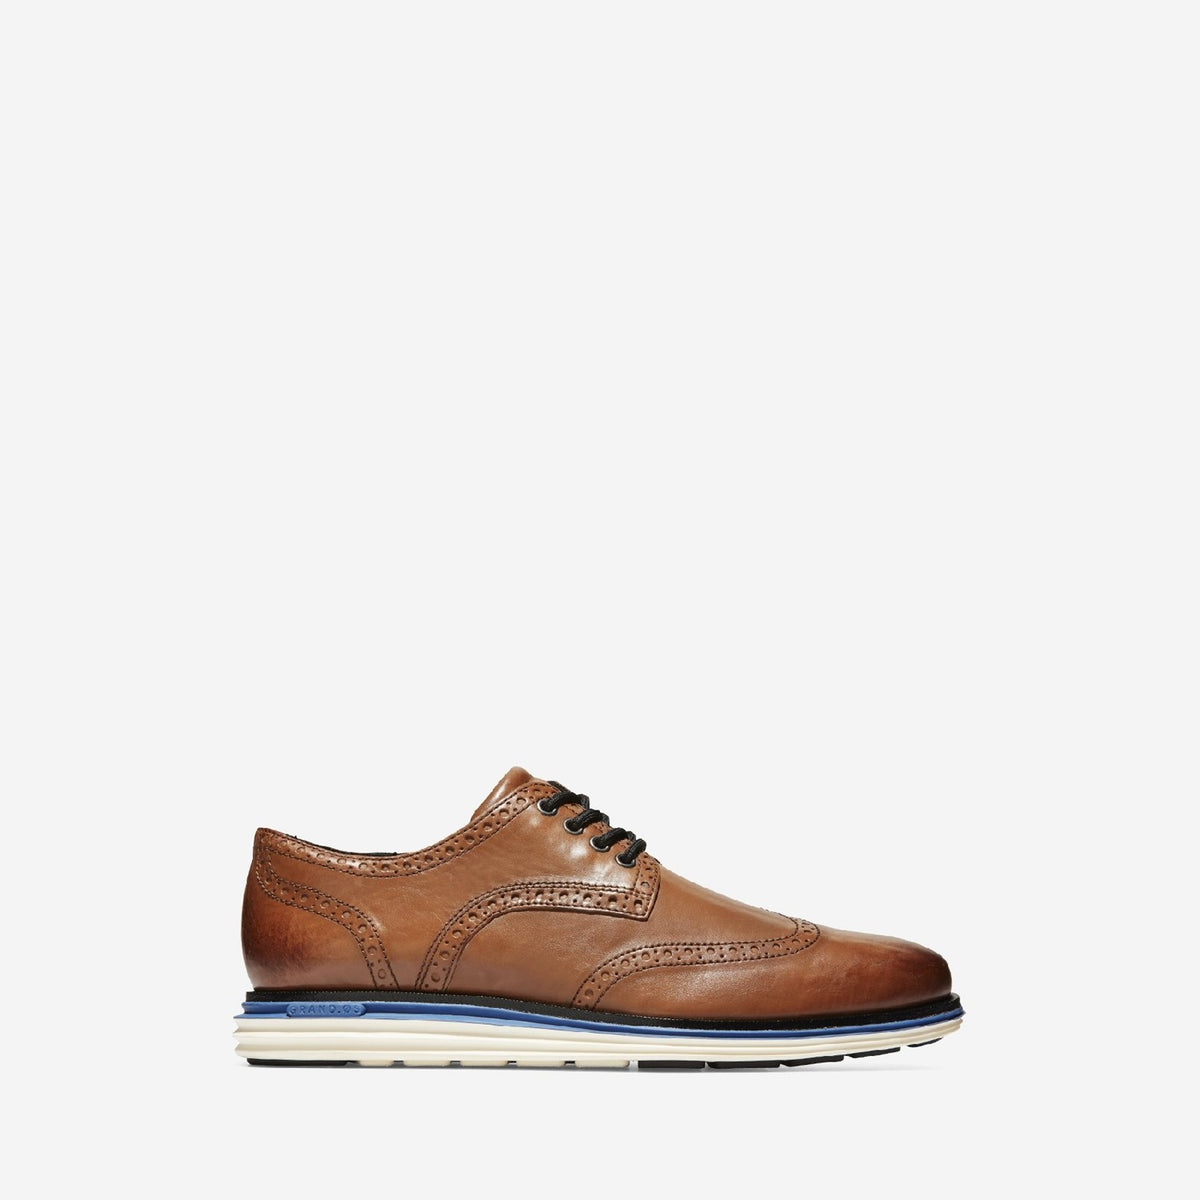 Men's ØriginalGrand Luxury Wingtip Oxford Safari Leather/Ivory